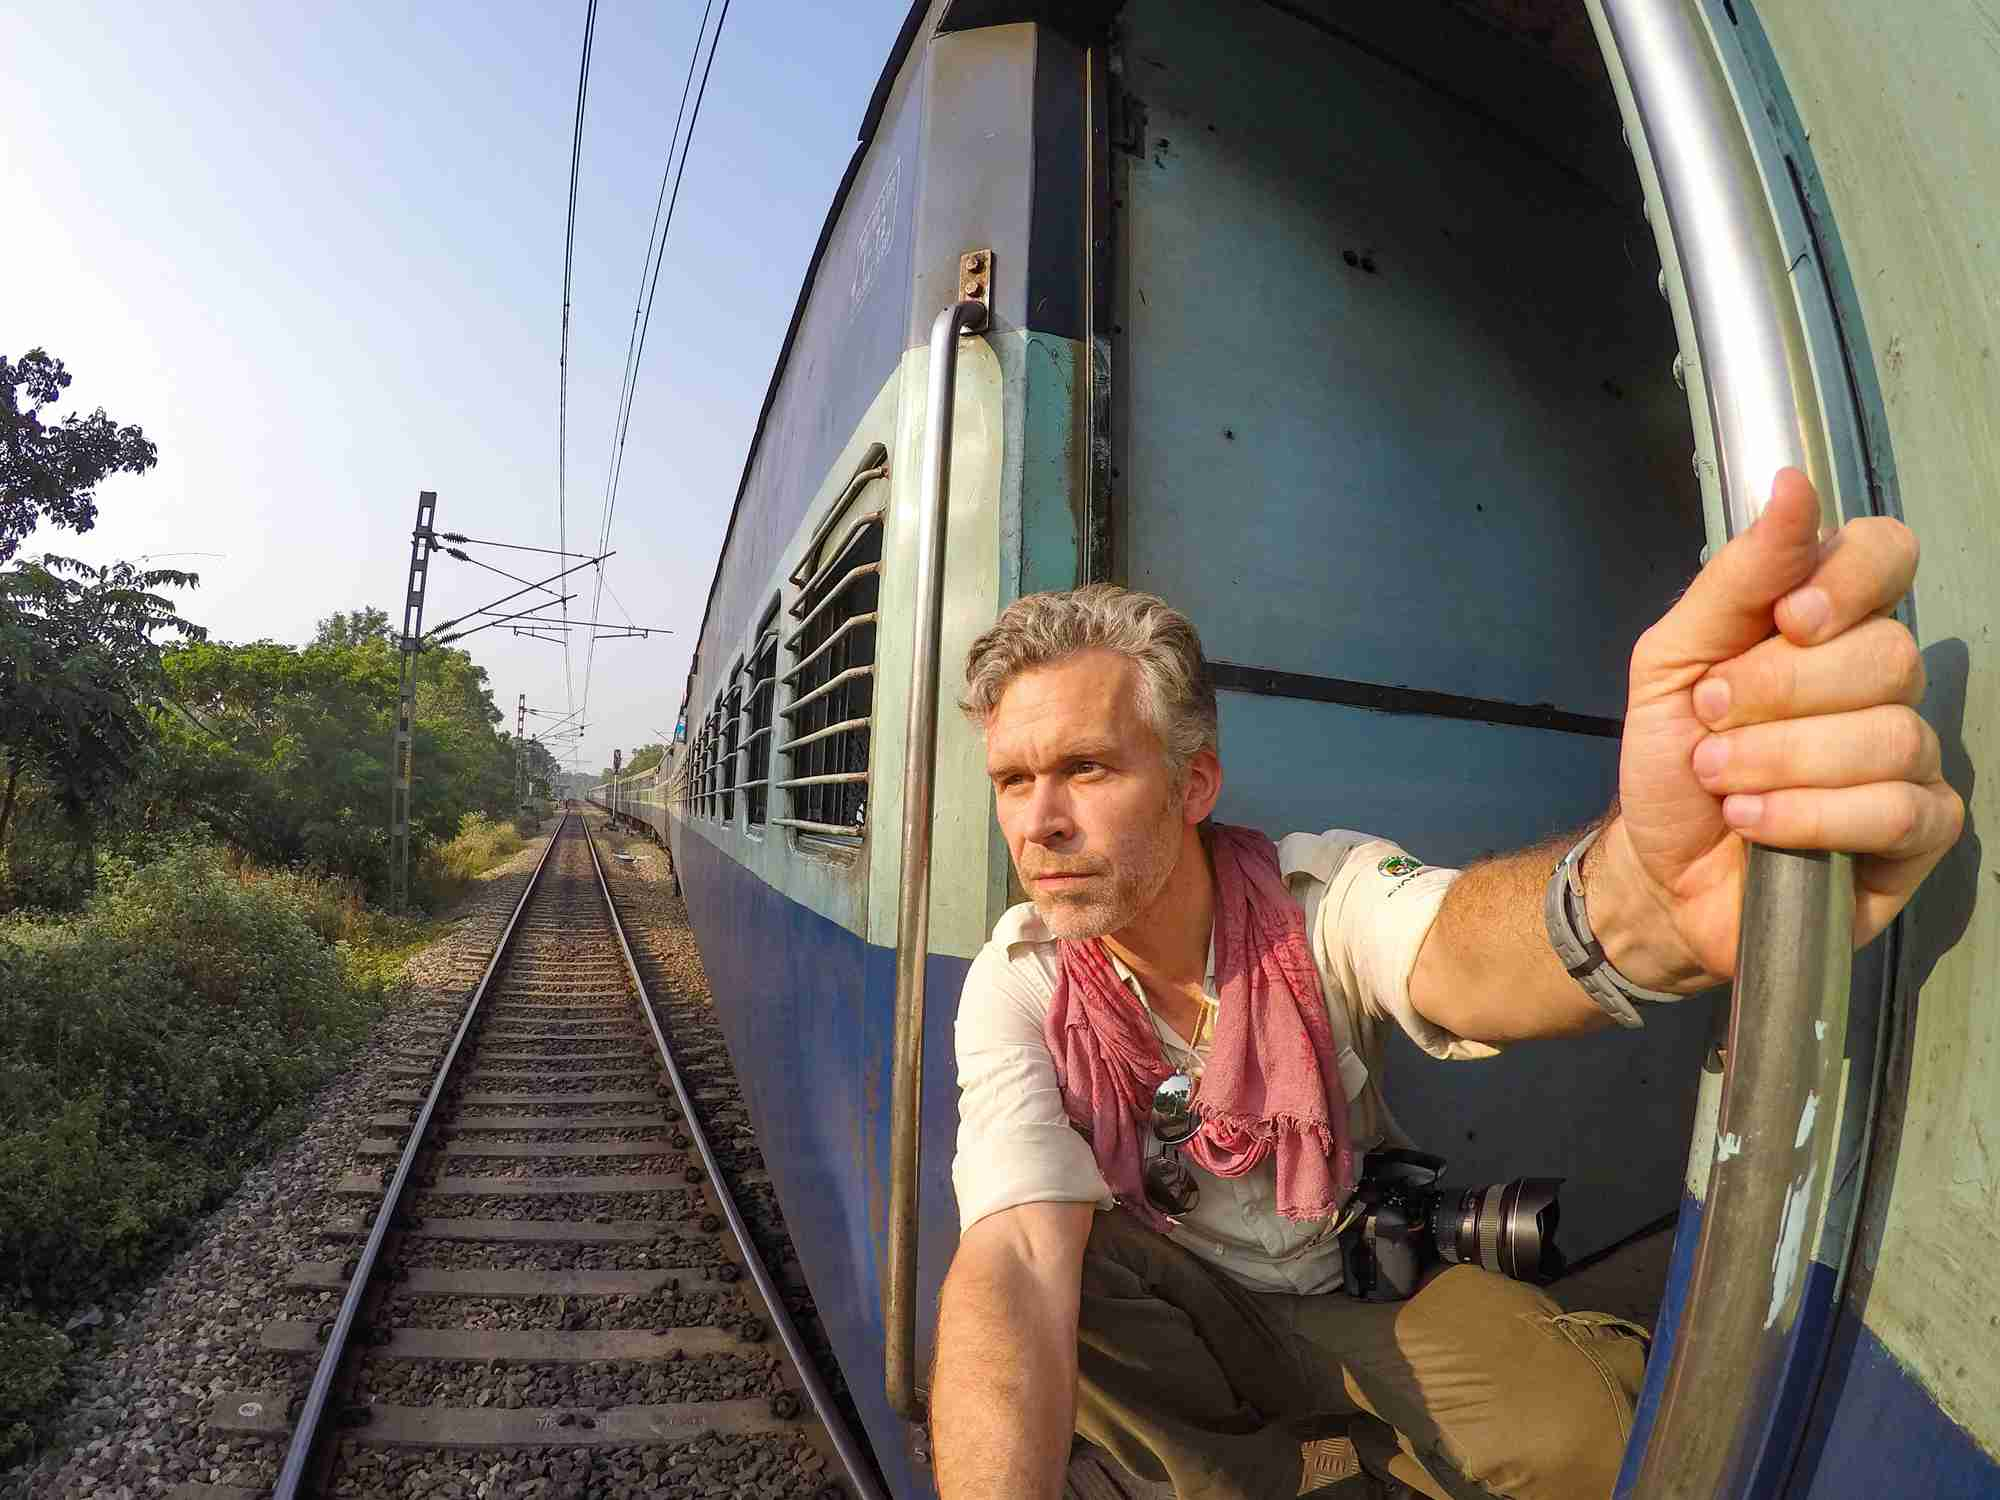 Man traveling on Indian train.